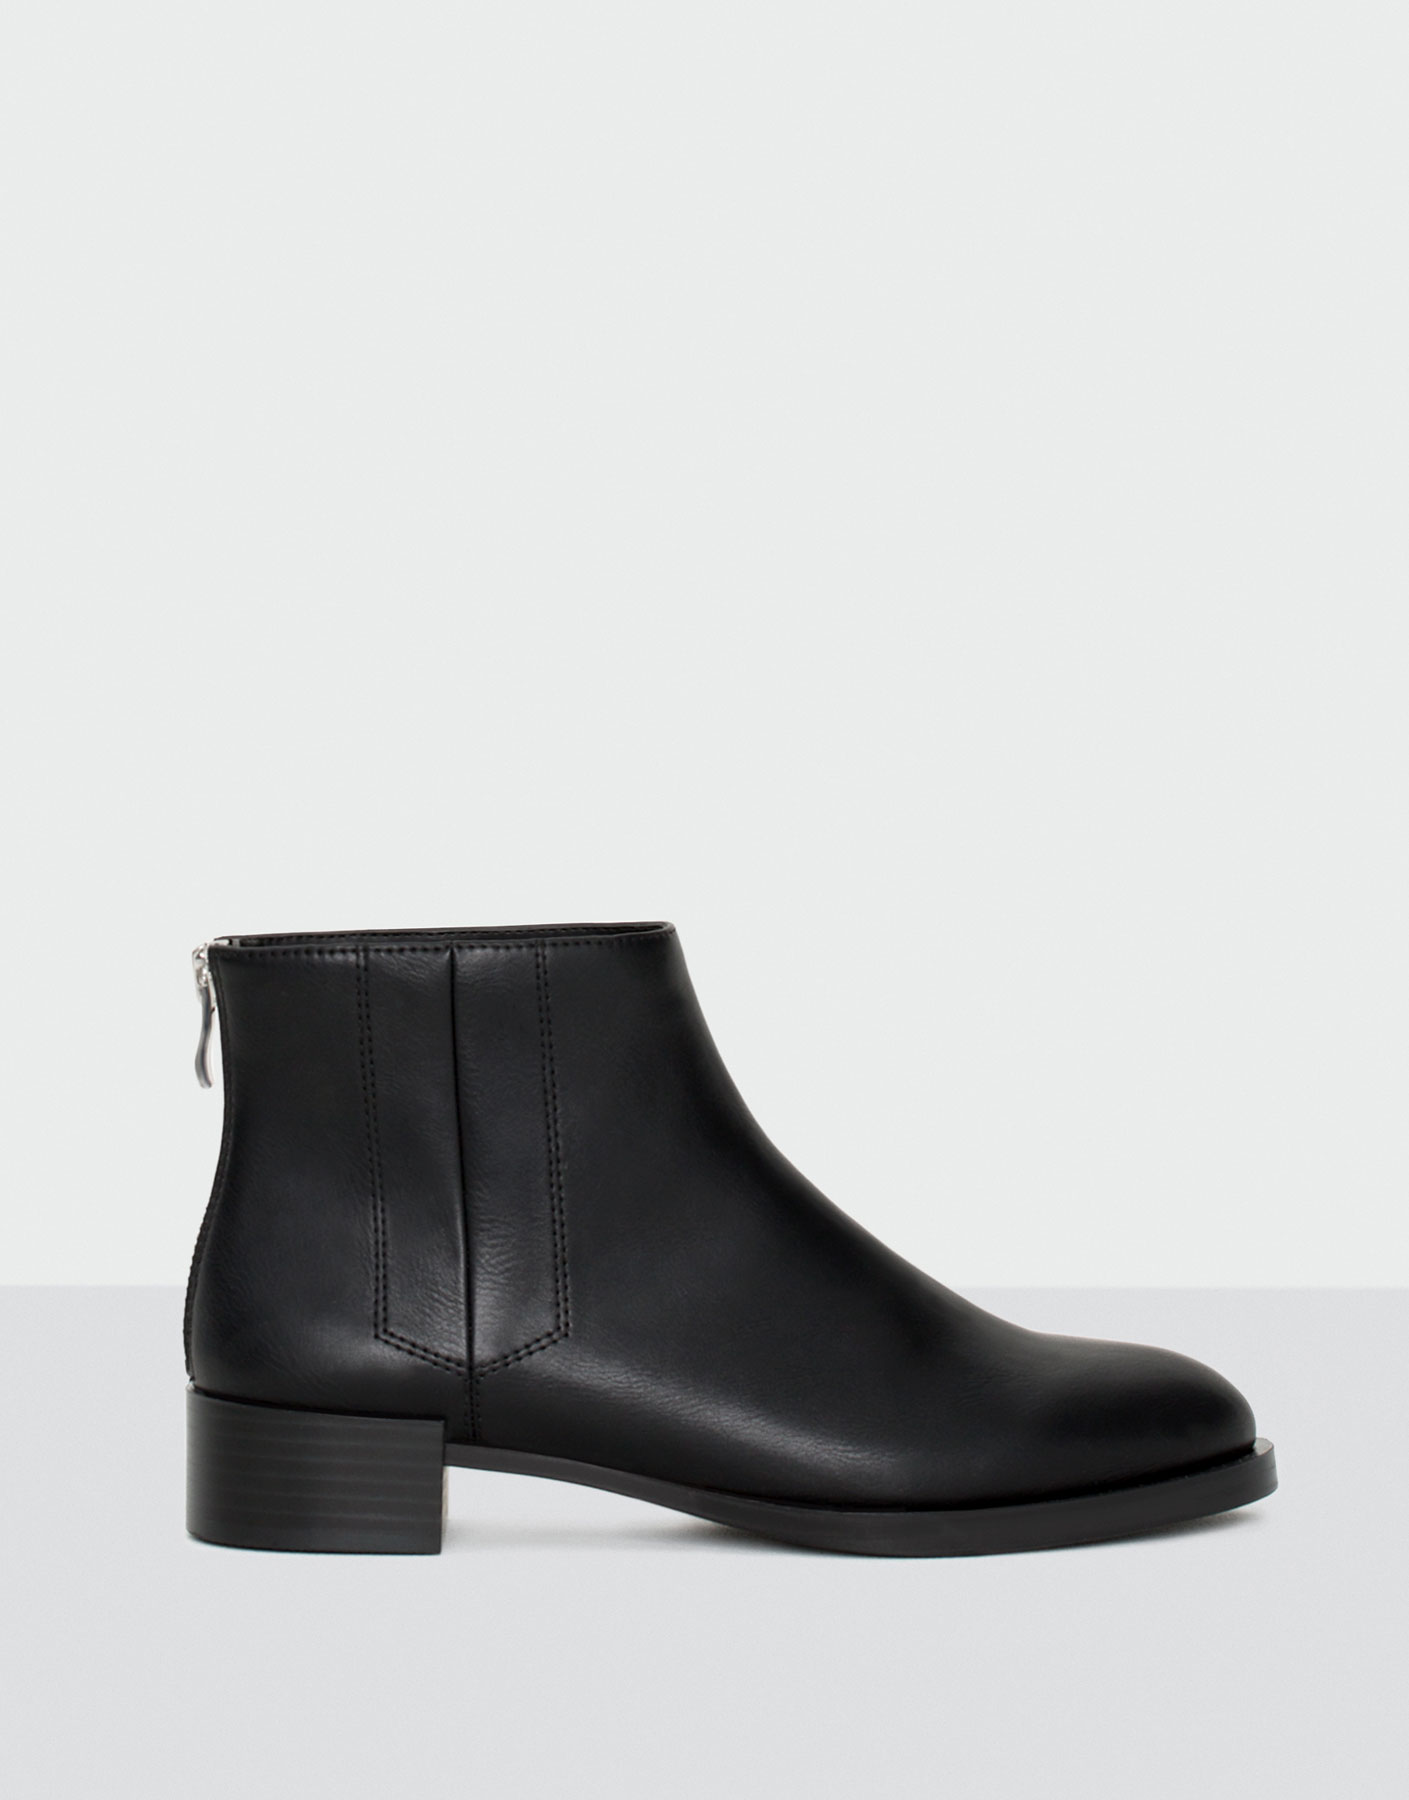 Ankle boots with side detail